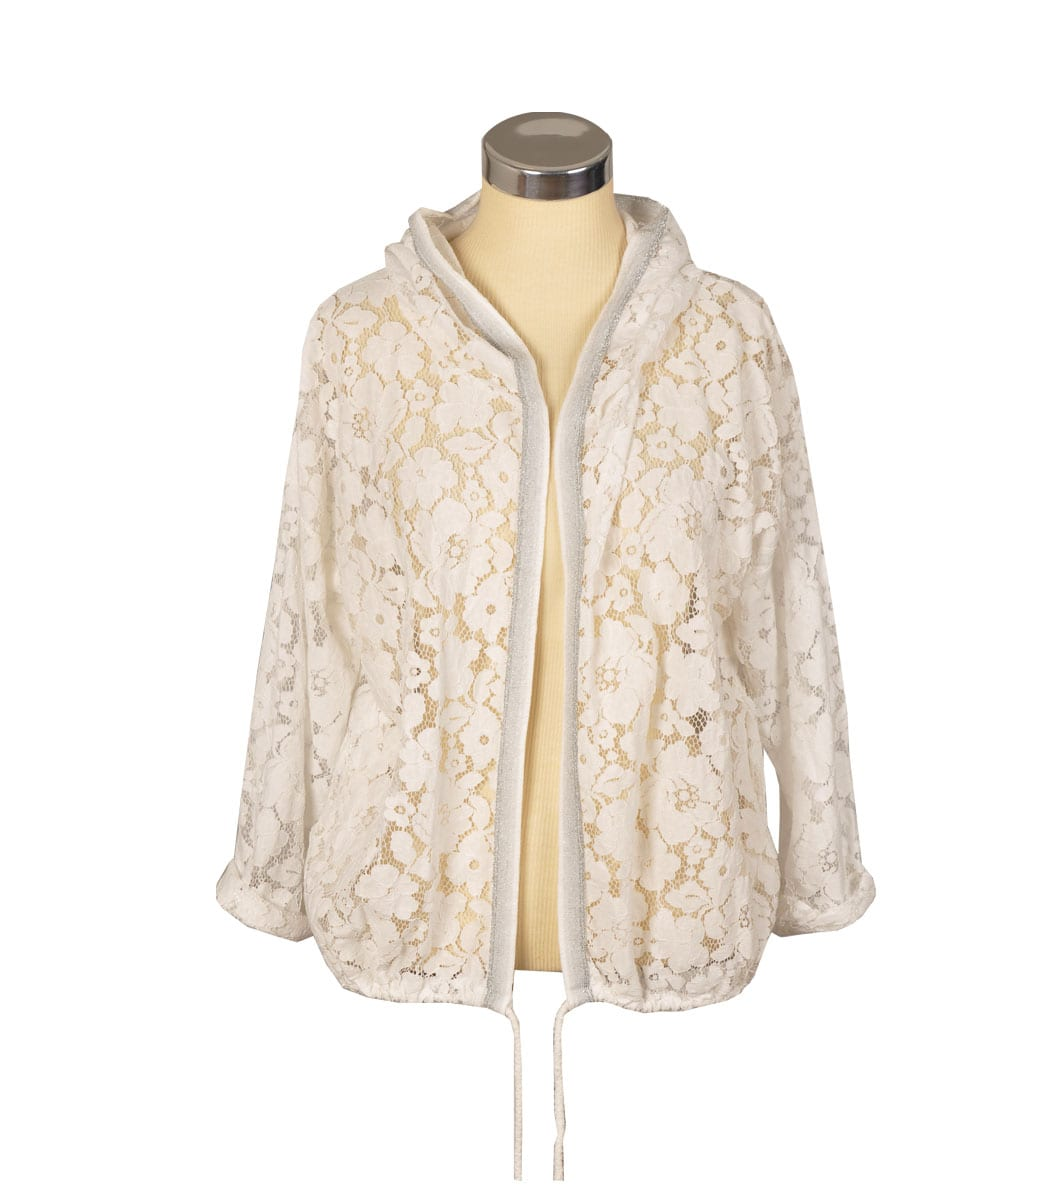 Hooded lace sequin back jacket